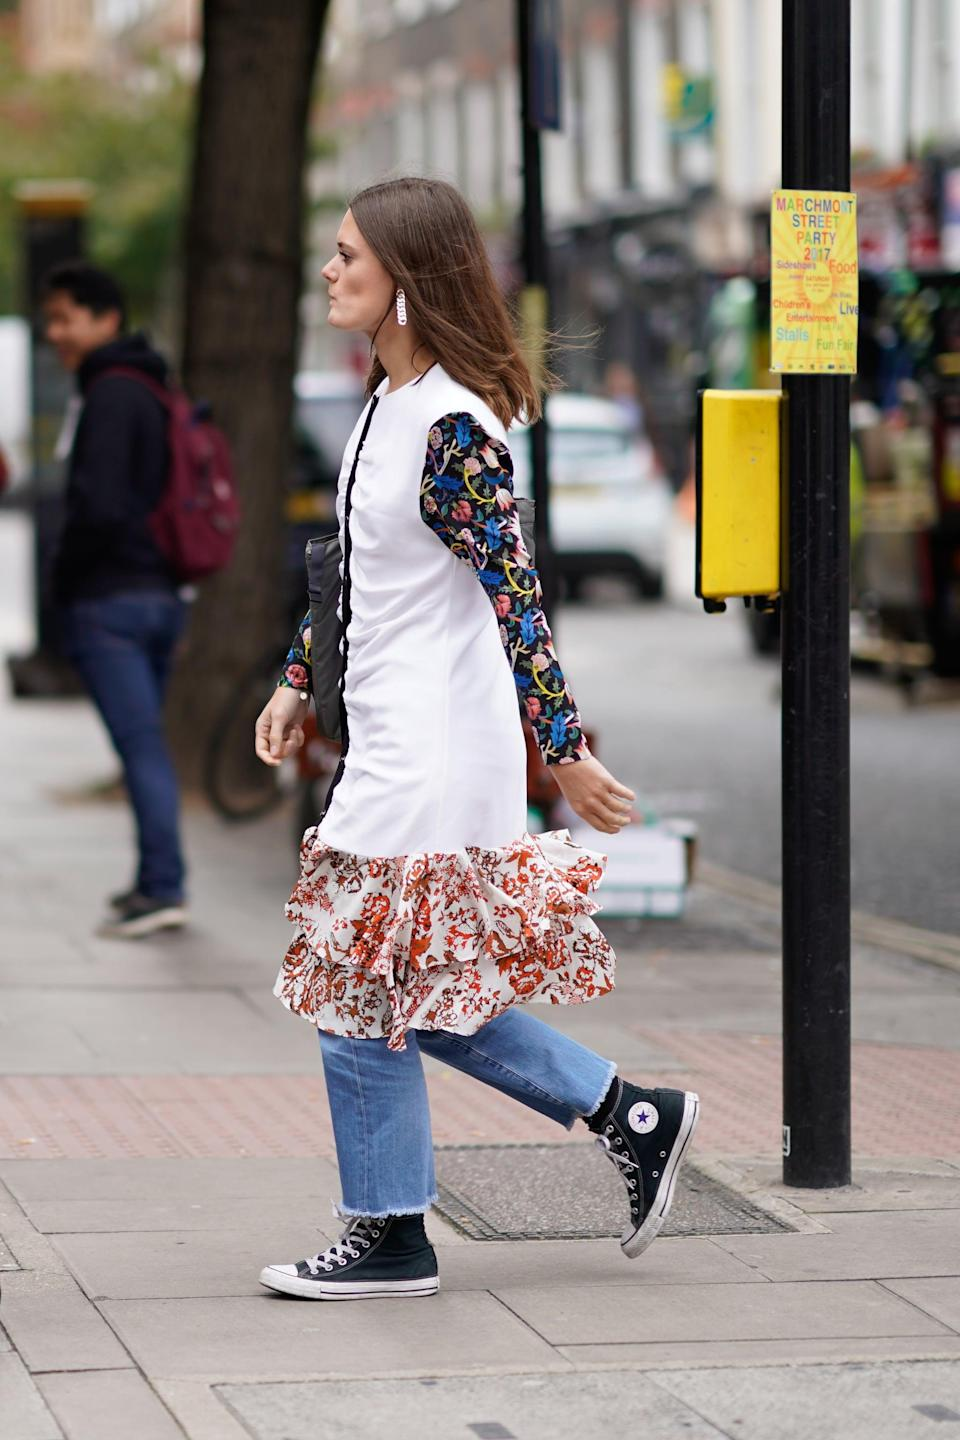 <p>Petite girls can get in on the action, too! A straight-leg jean cropped high enough will reveal classic high-tops without making you look shorter.</p>